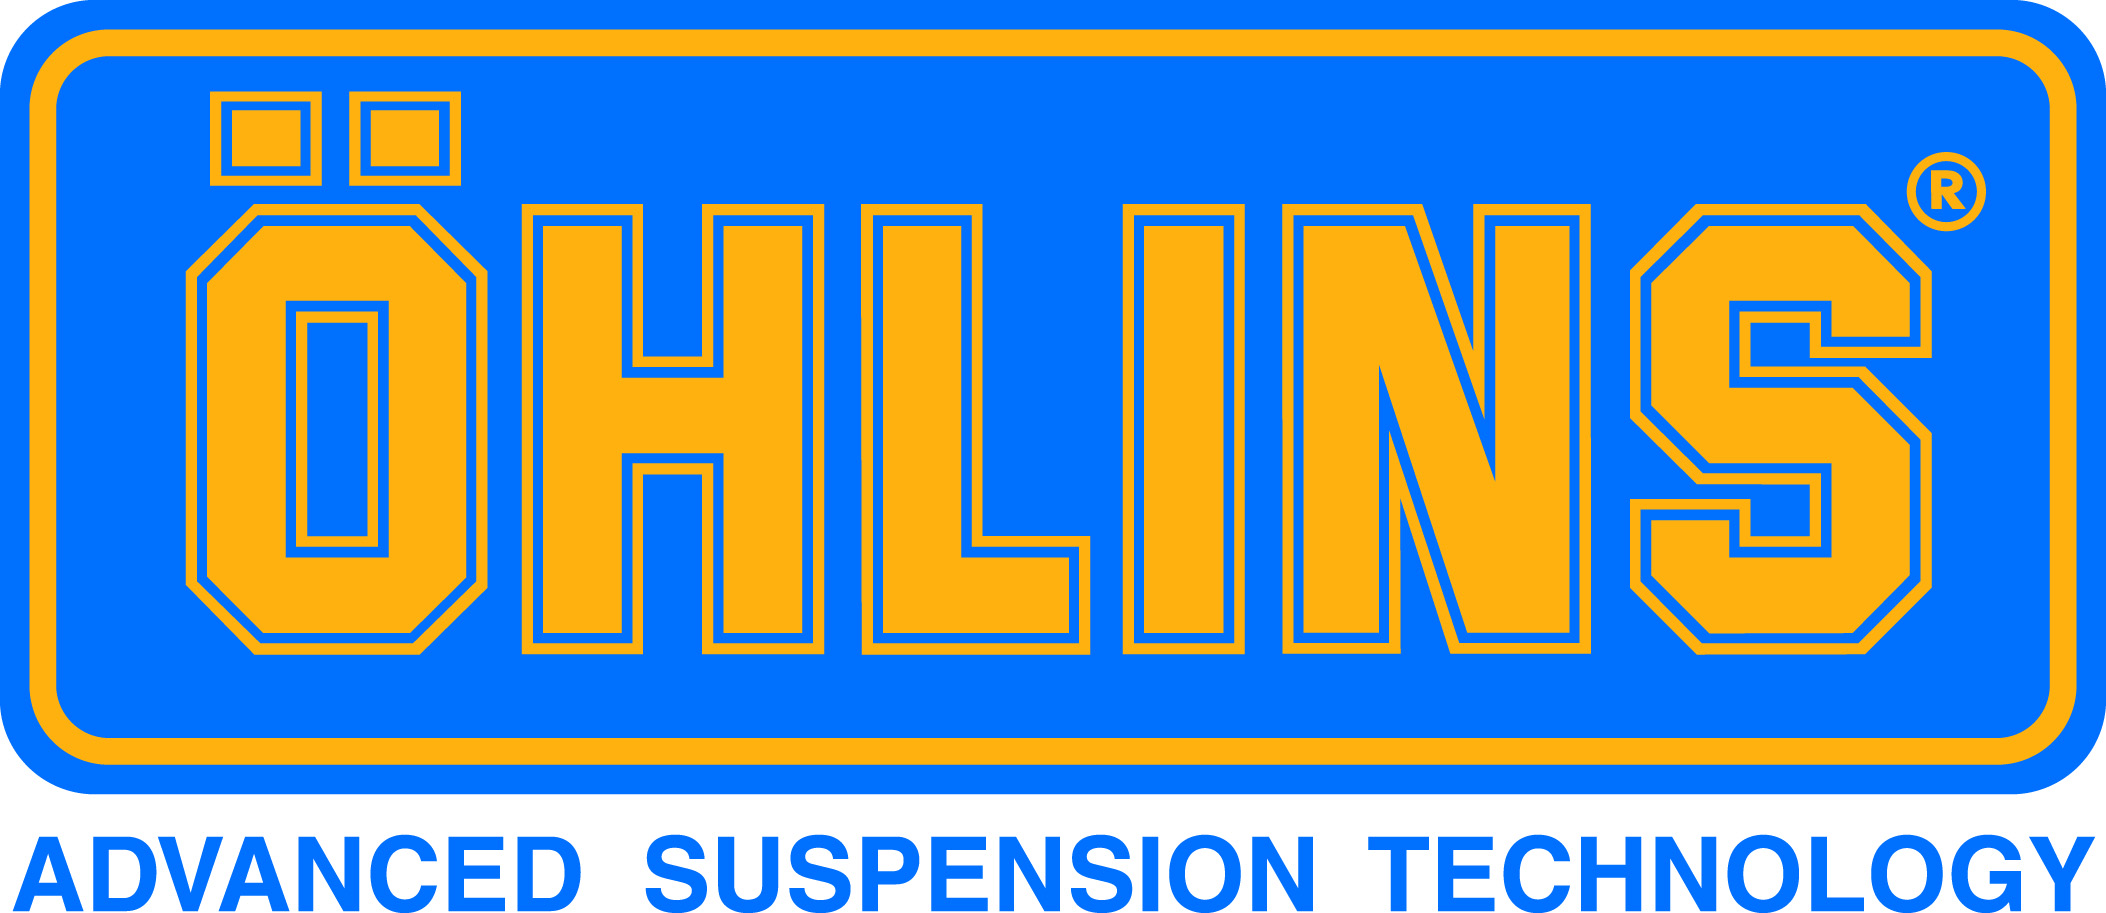 ohlins suspension service motostyl thessaloniki